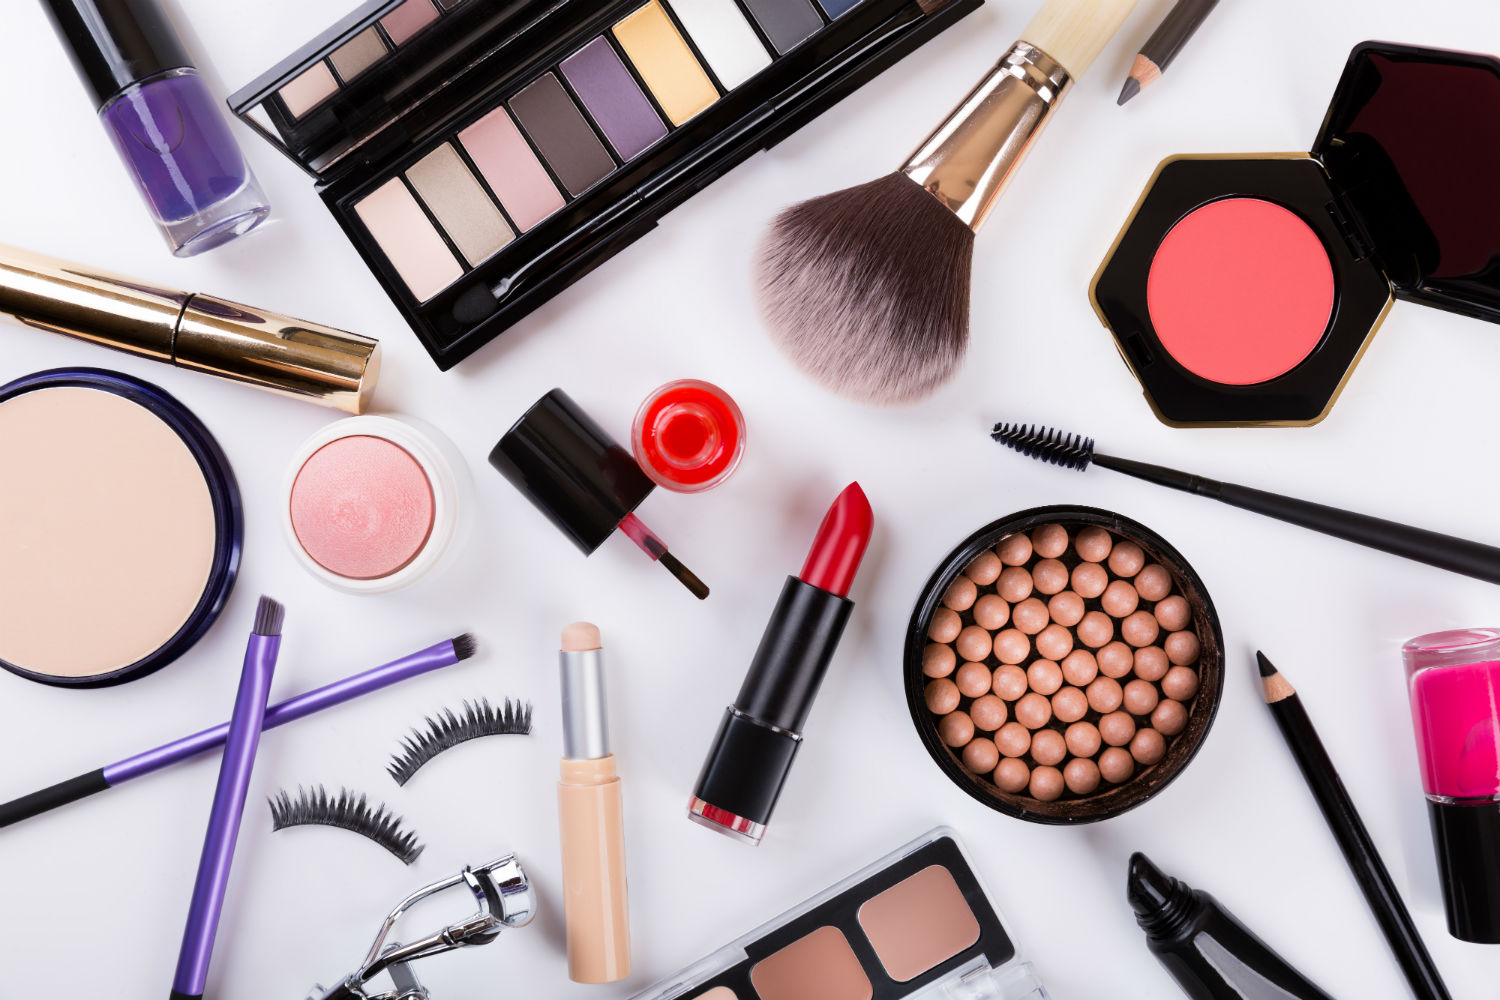 MAKE-UP: THE BEST ALLY OF WOMEN SINCE THOUSANDS OF YEARS